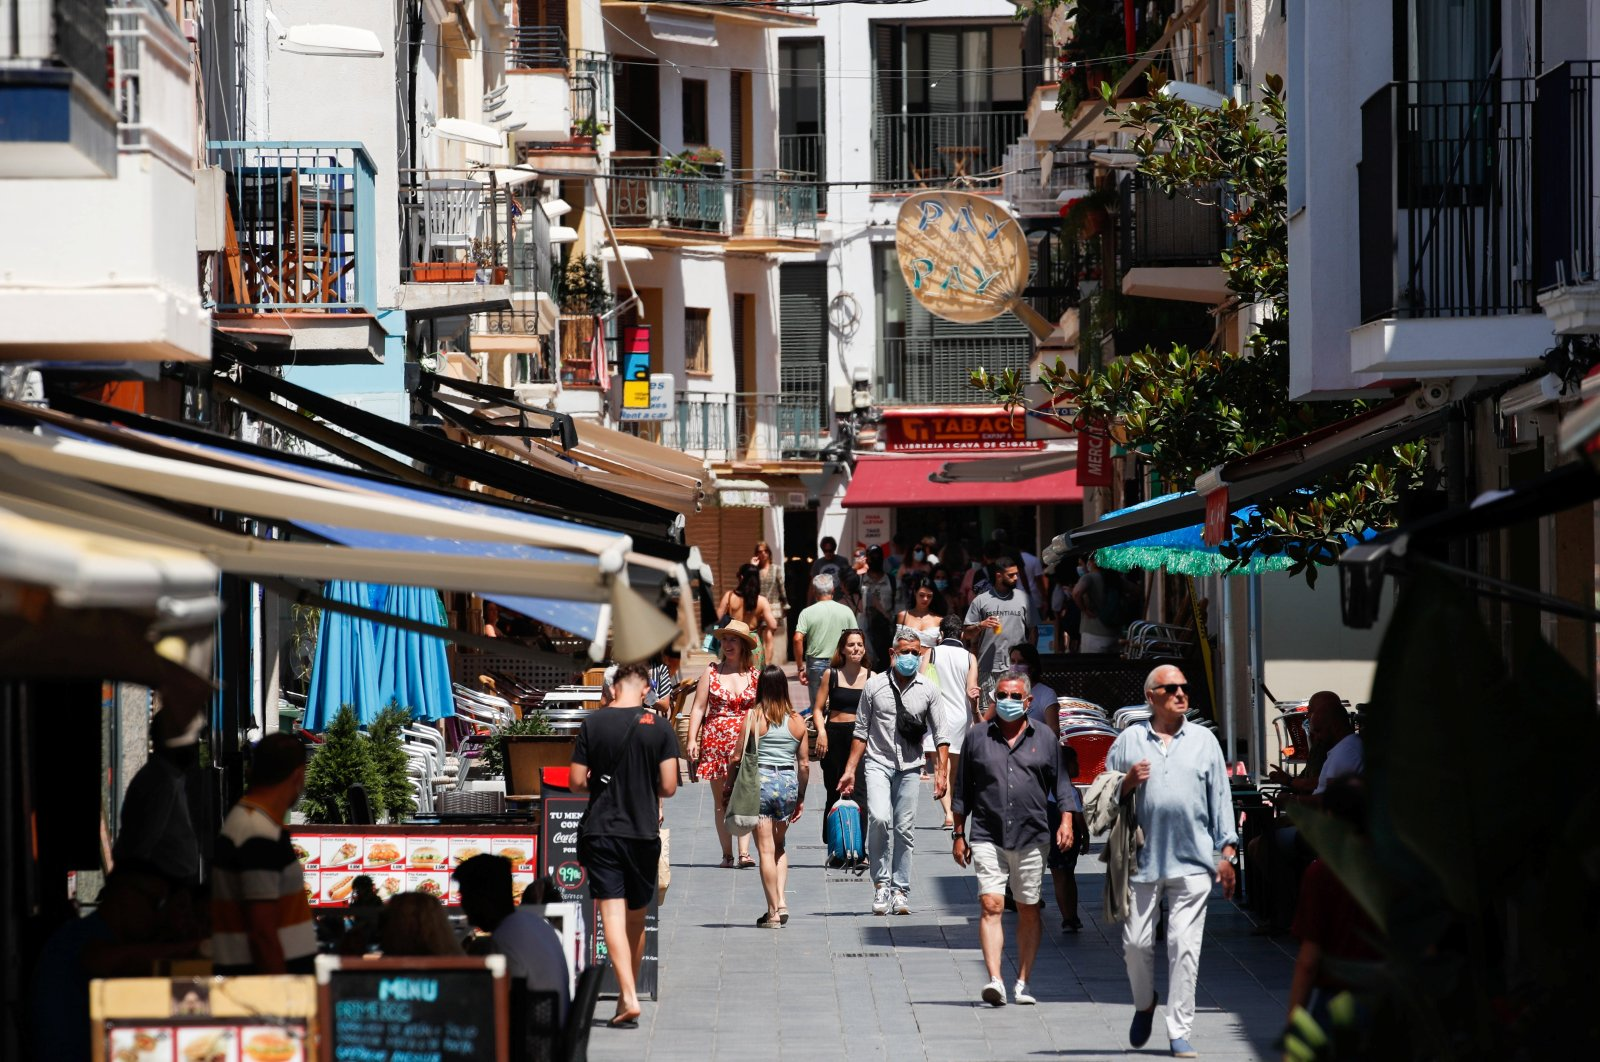 People walk in a pedestrian area in Sitges town, south of Barcelona, Spain, July 15, 2021. (Reuters Photo)